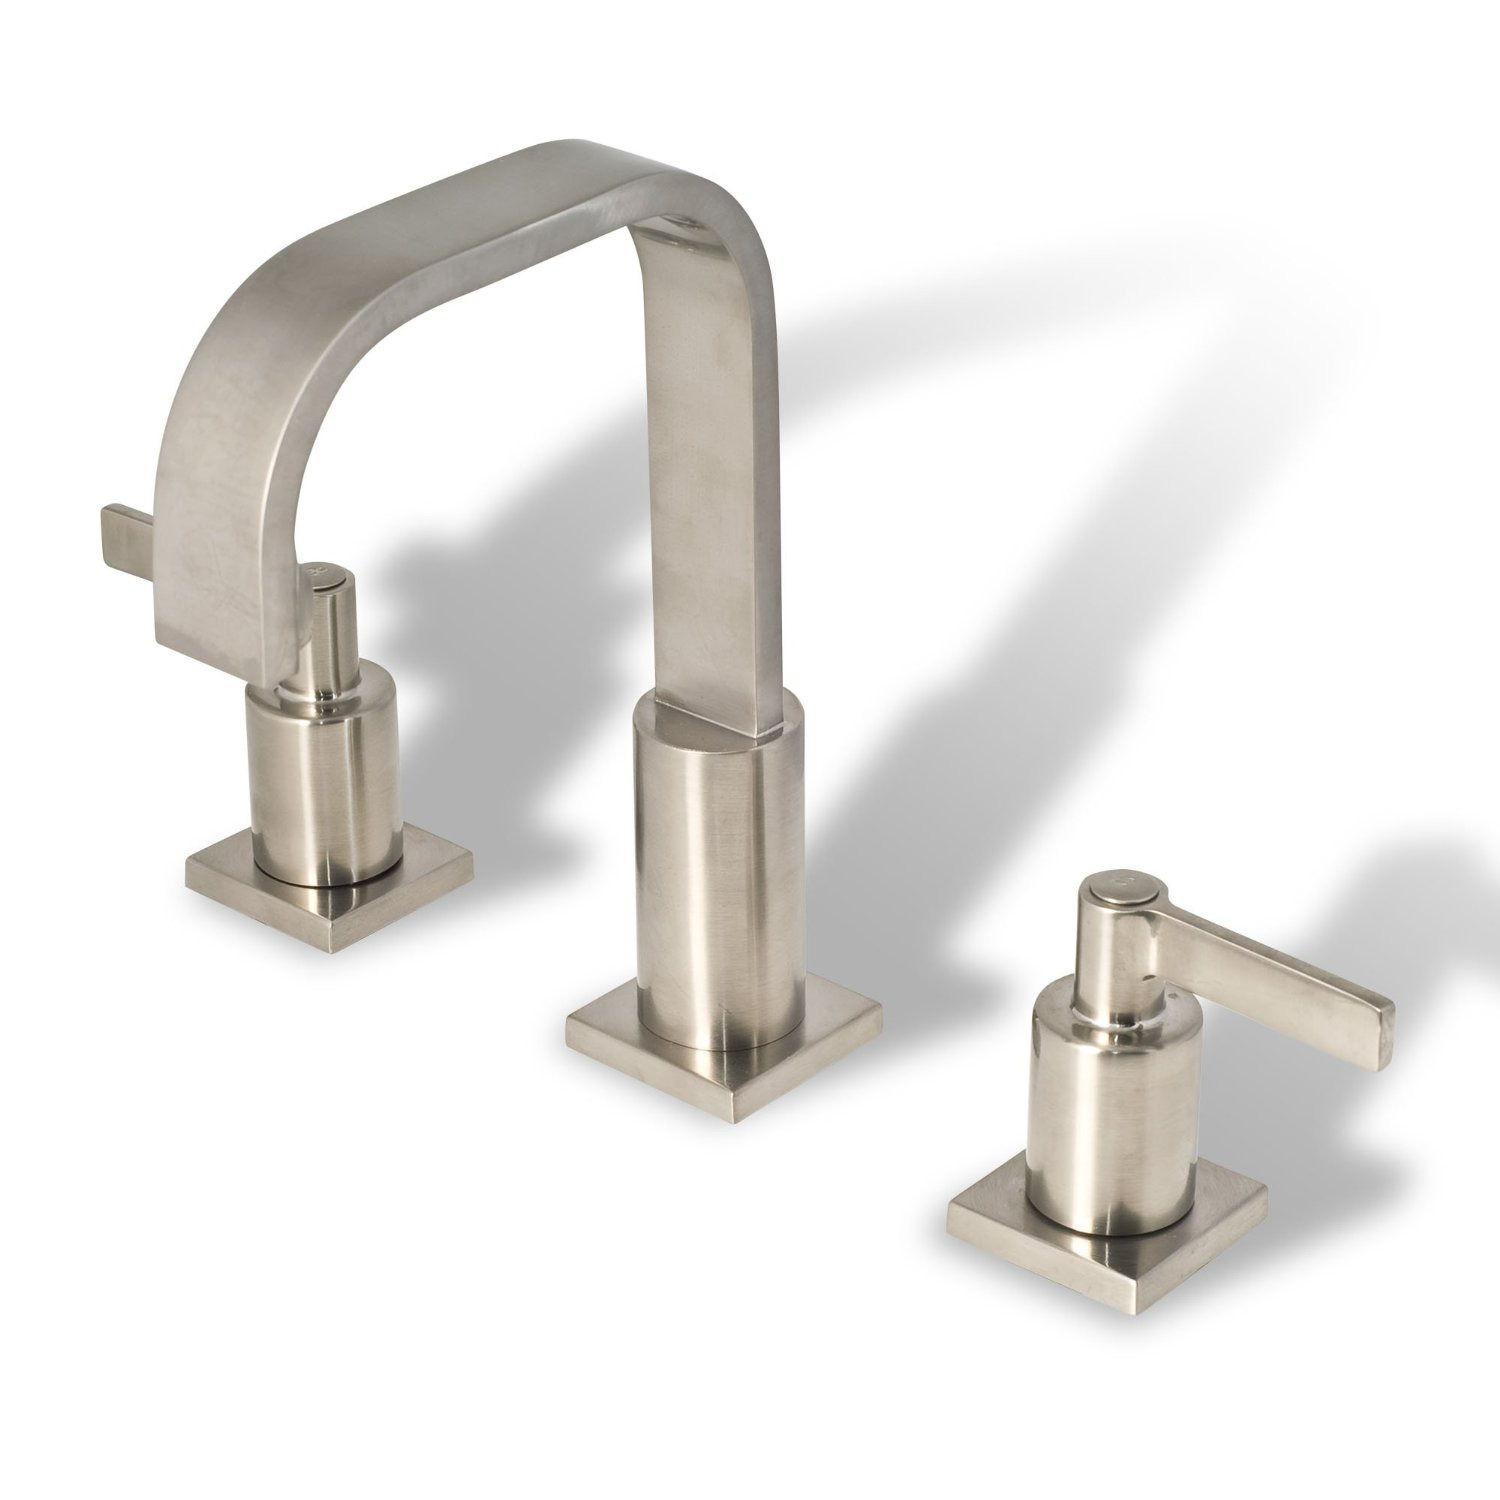 Bathroom Vanity Sink Widespread Lavatory Faucet Brushed Nickel cUPC ...